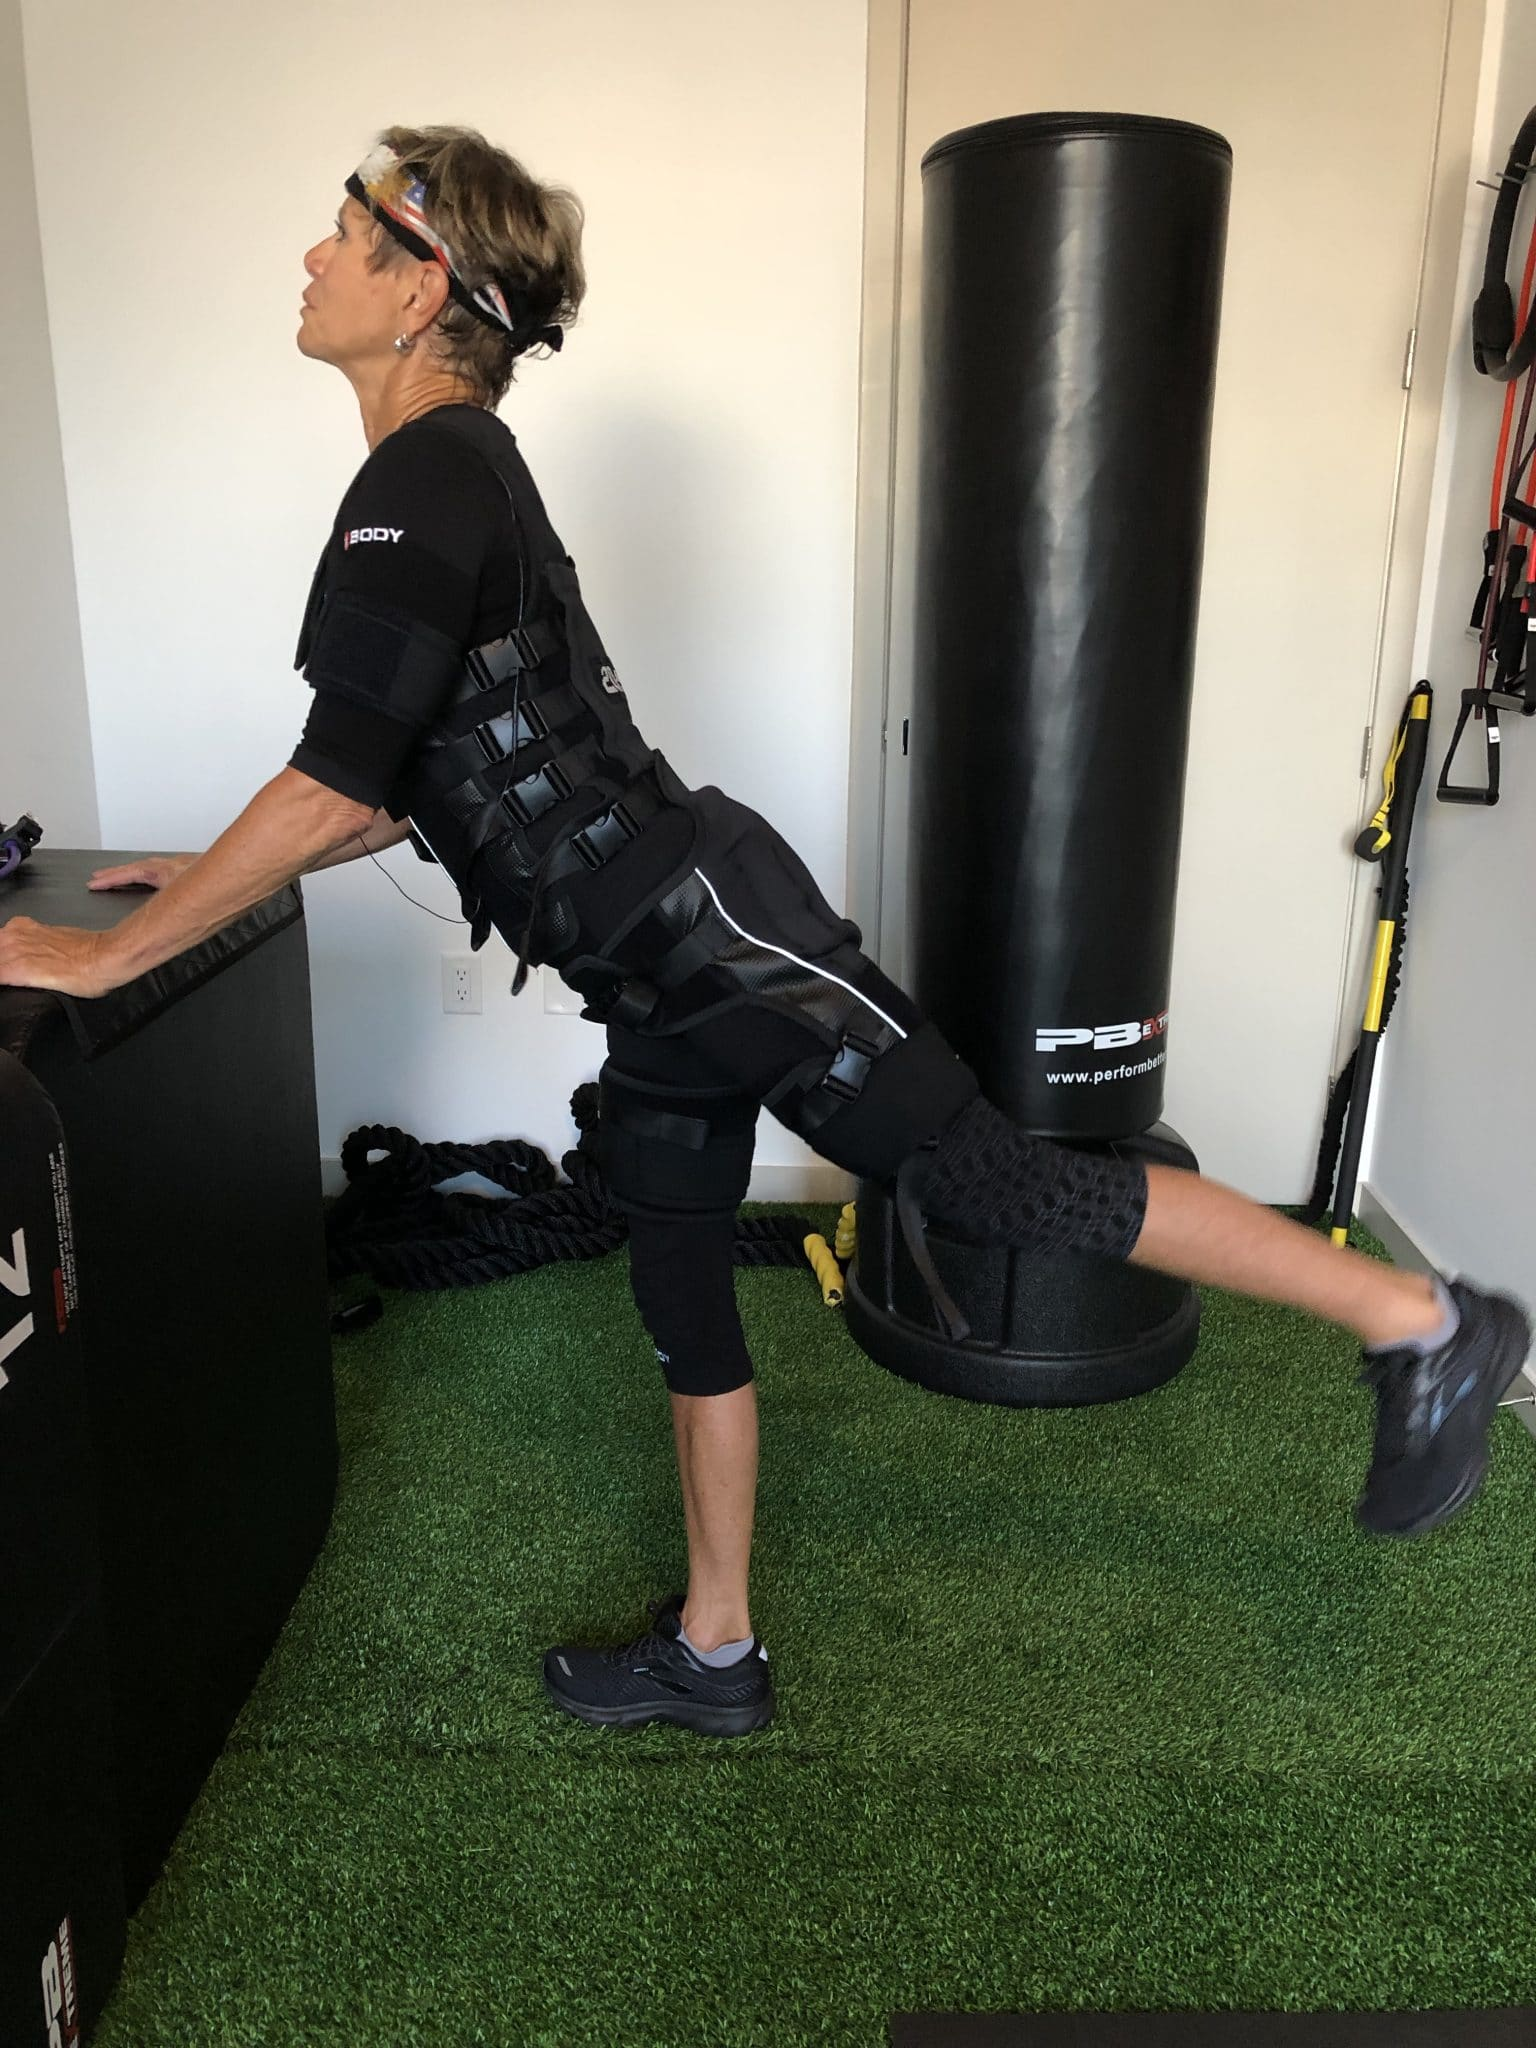 Low and body weight exercises work well with electronic stimulation